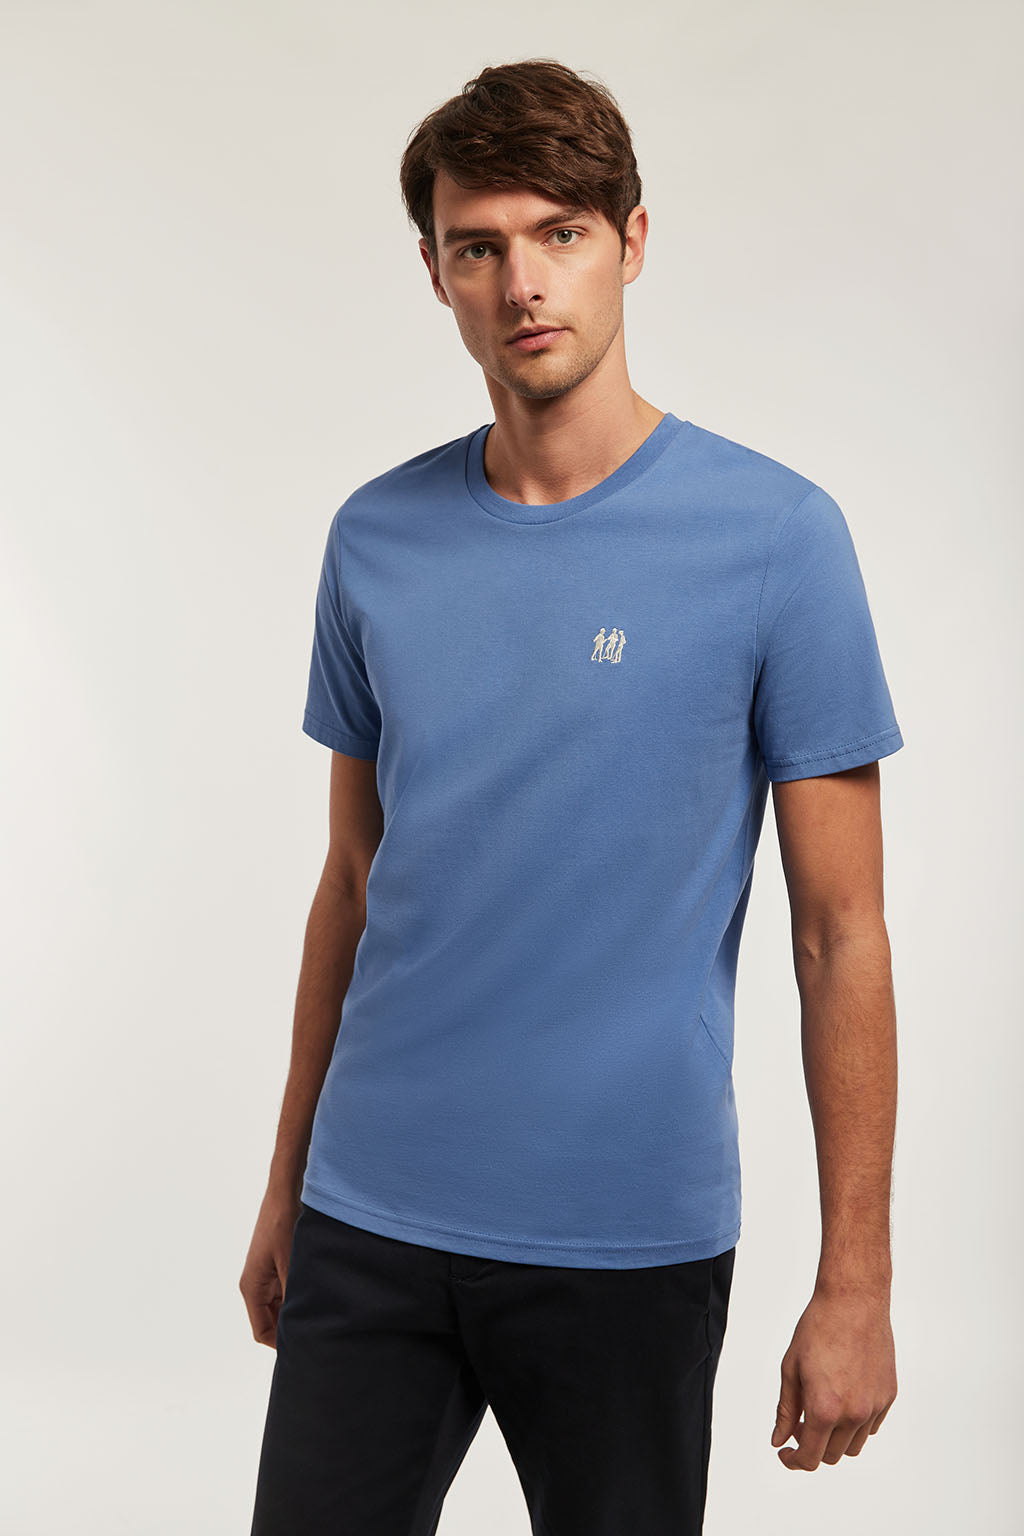 Camiseta orgánica azul royal bordado beige